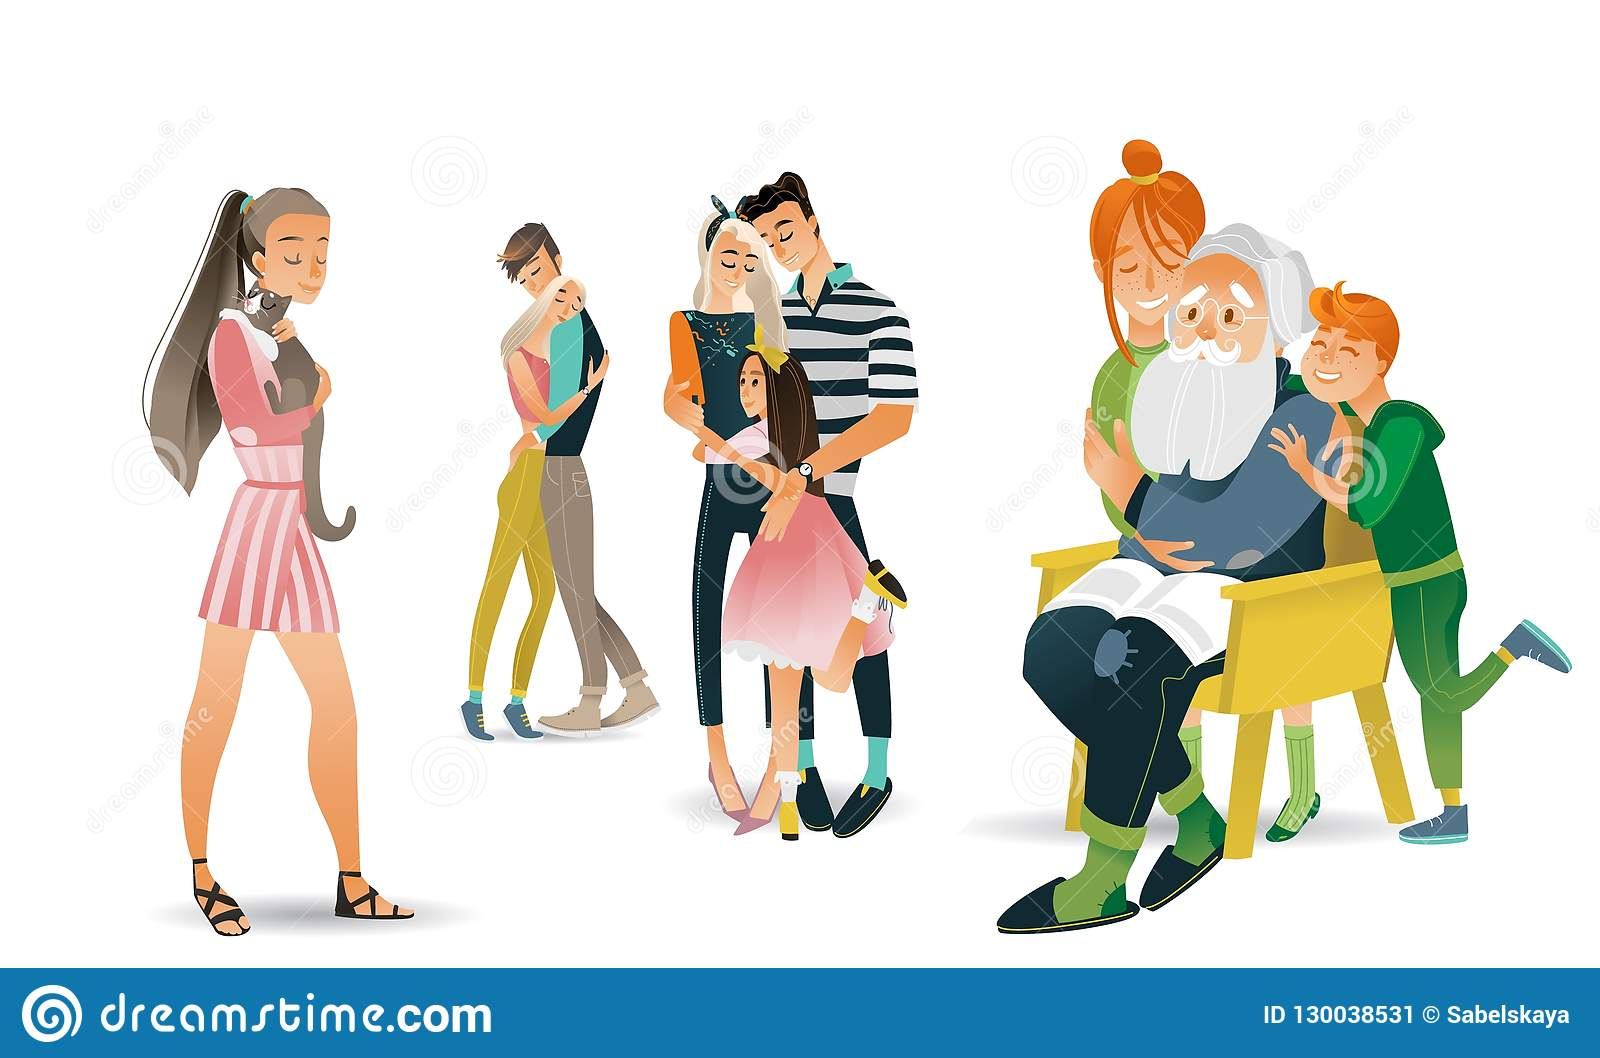 Family hug vector illustration set - various scenes with people embracing each other with love.